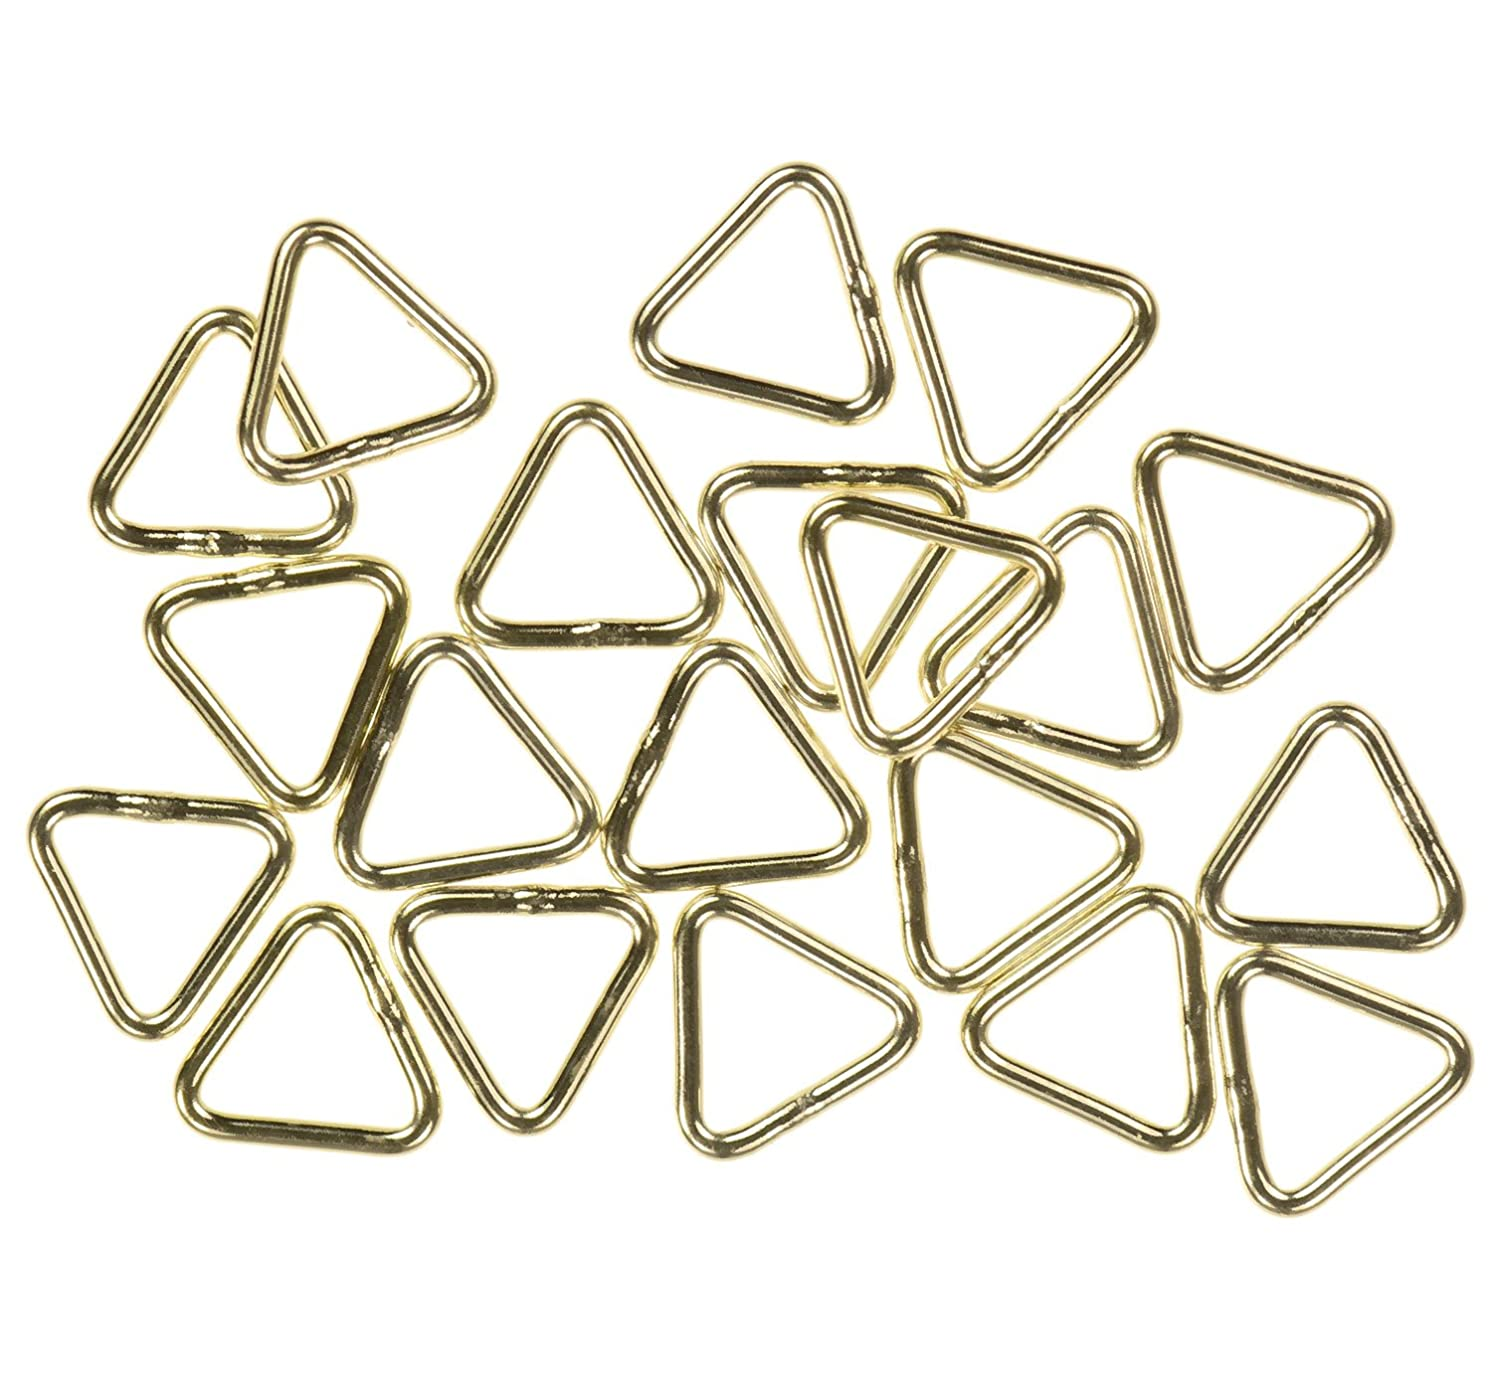 uGems 24 14K Gold Filled Triangle Jump Rings 22ga 5mm Closed Ring